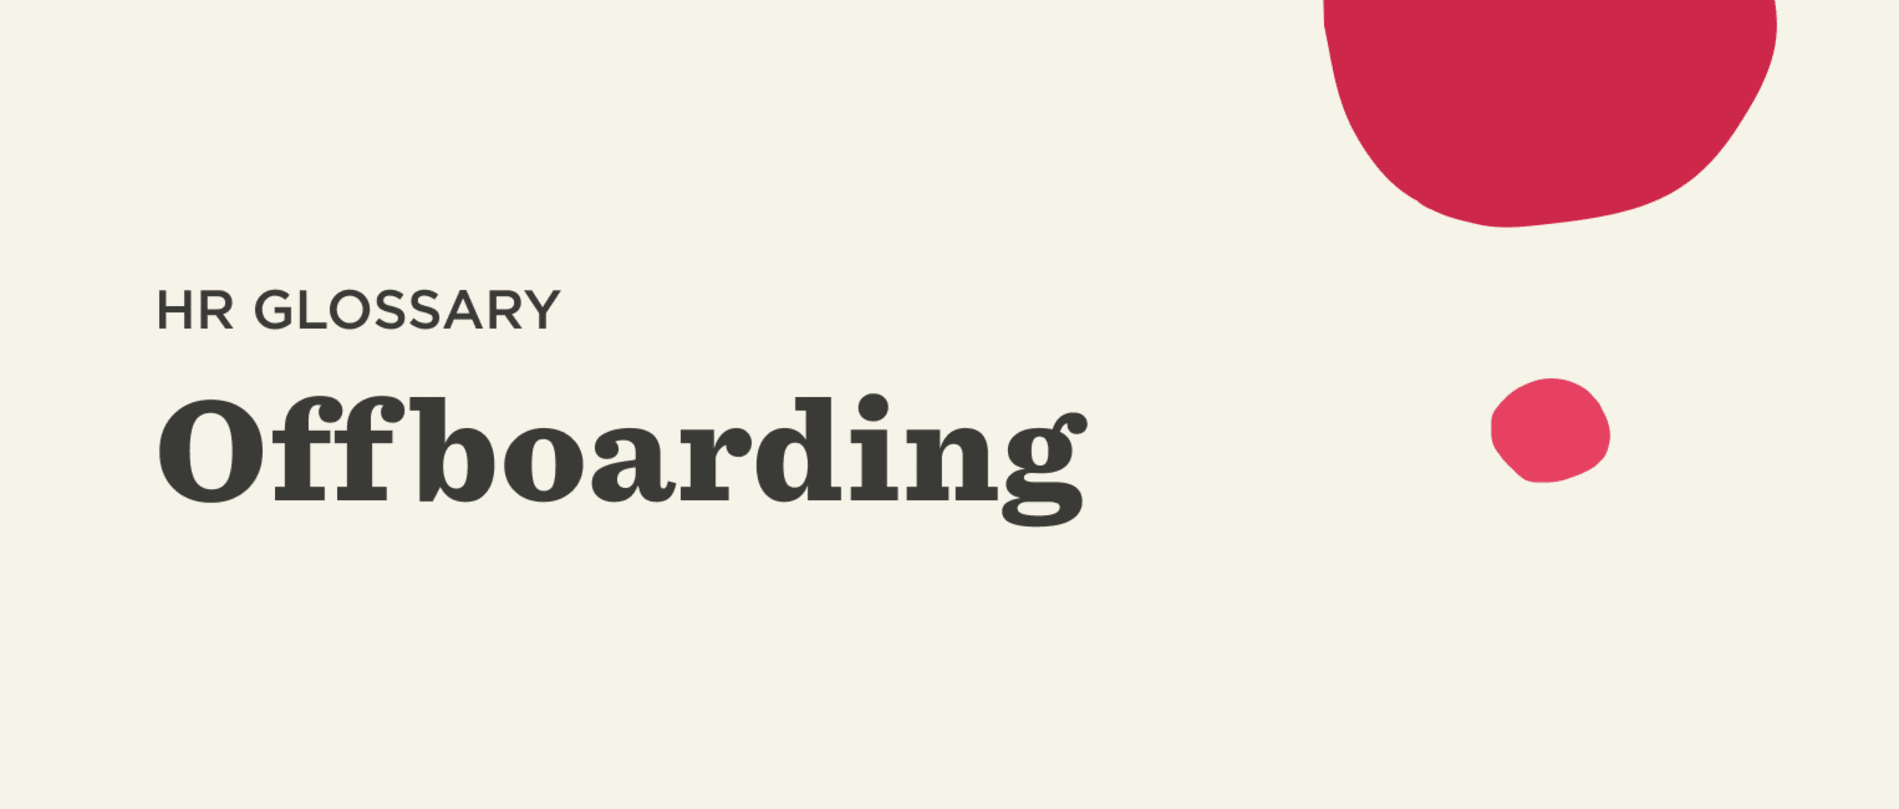 What is offboarding? - Offboarding-Glossary-banner-1.png